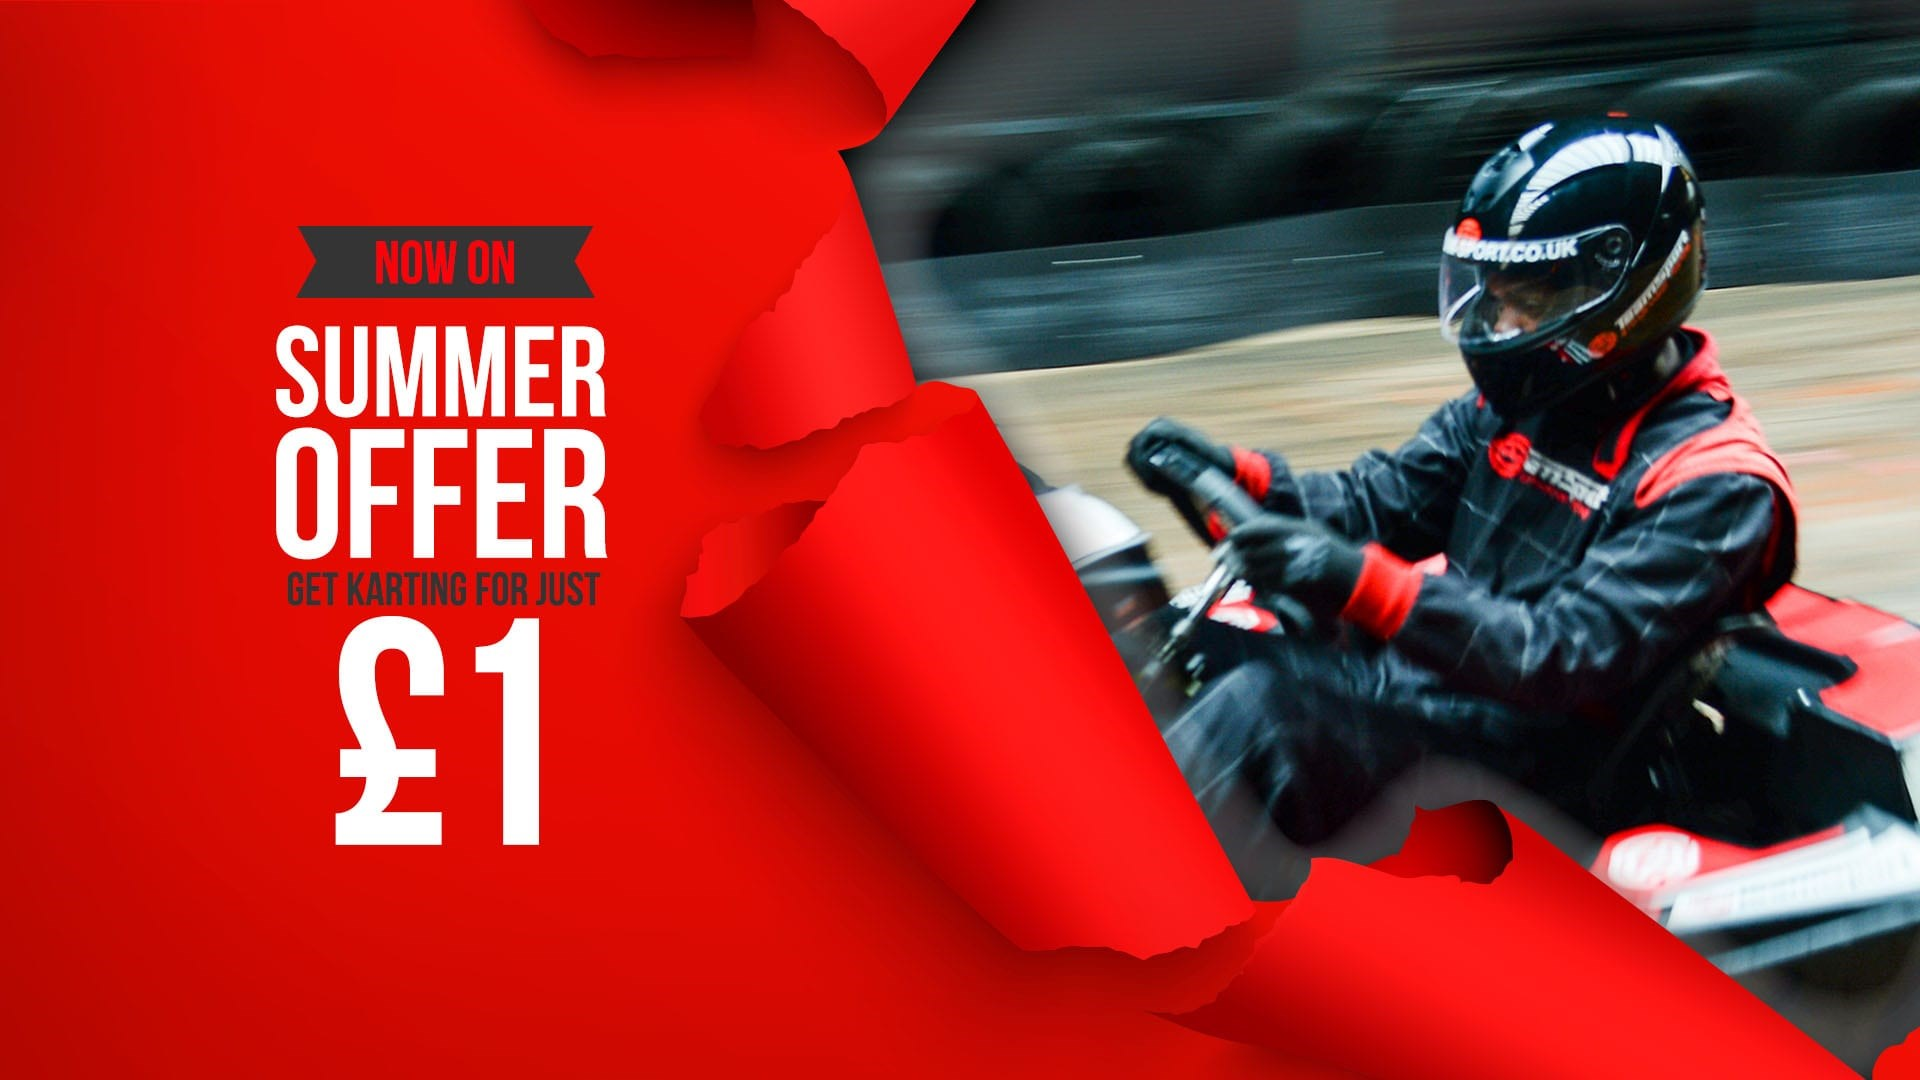 TeamSport_Karting_Offer_Summer_£1_website_header_1920x1080-min.jpg